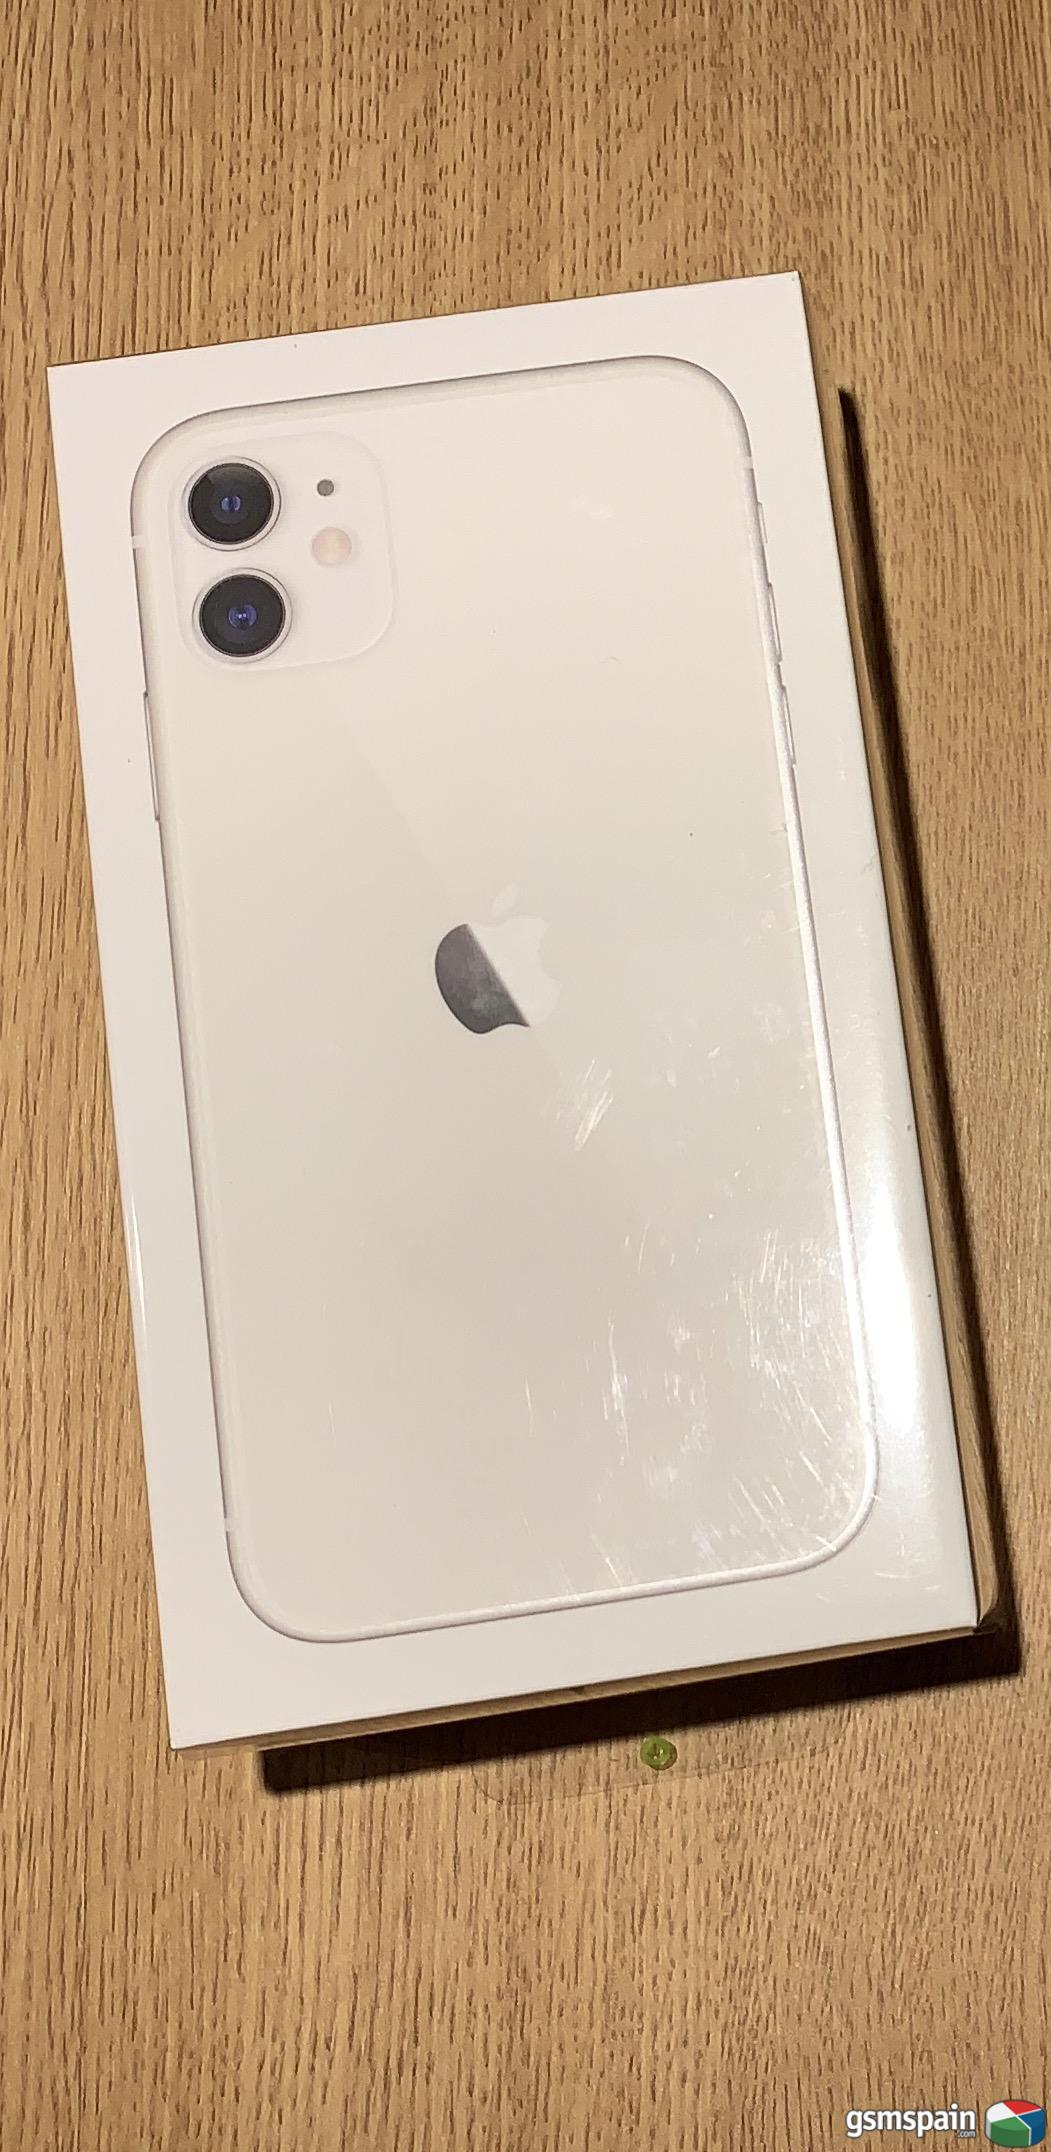 [VENDO] *** 2 x iPhone 11 64GB Blanco y Negro precintados ***